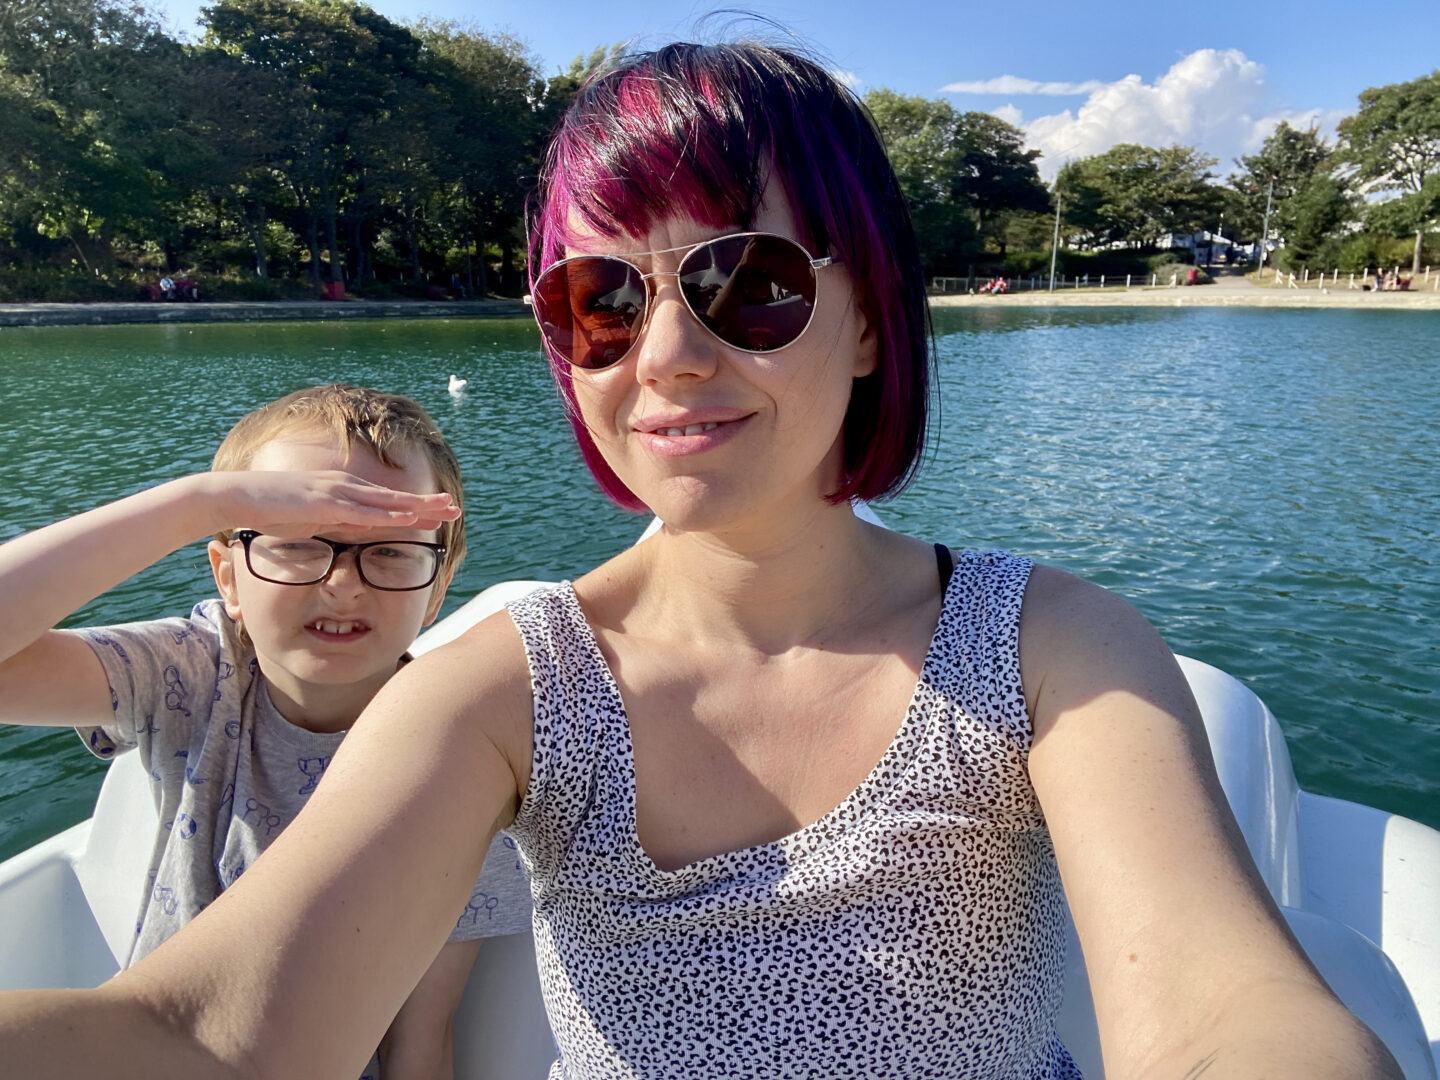 a woman and 9 year old boy on a boat in a boating lake